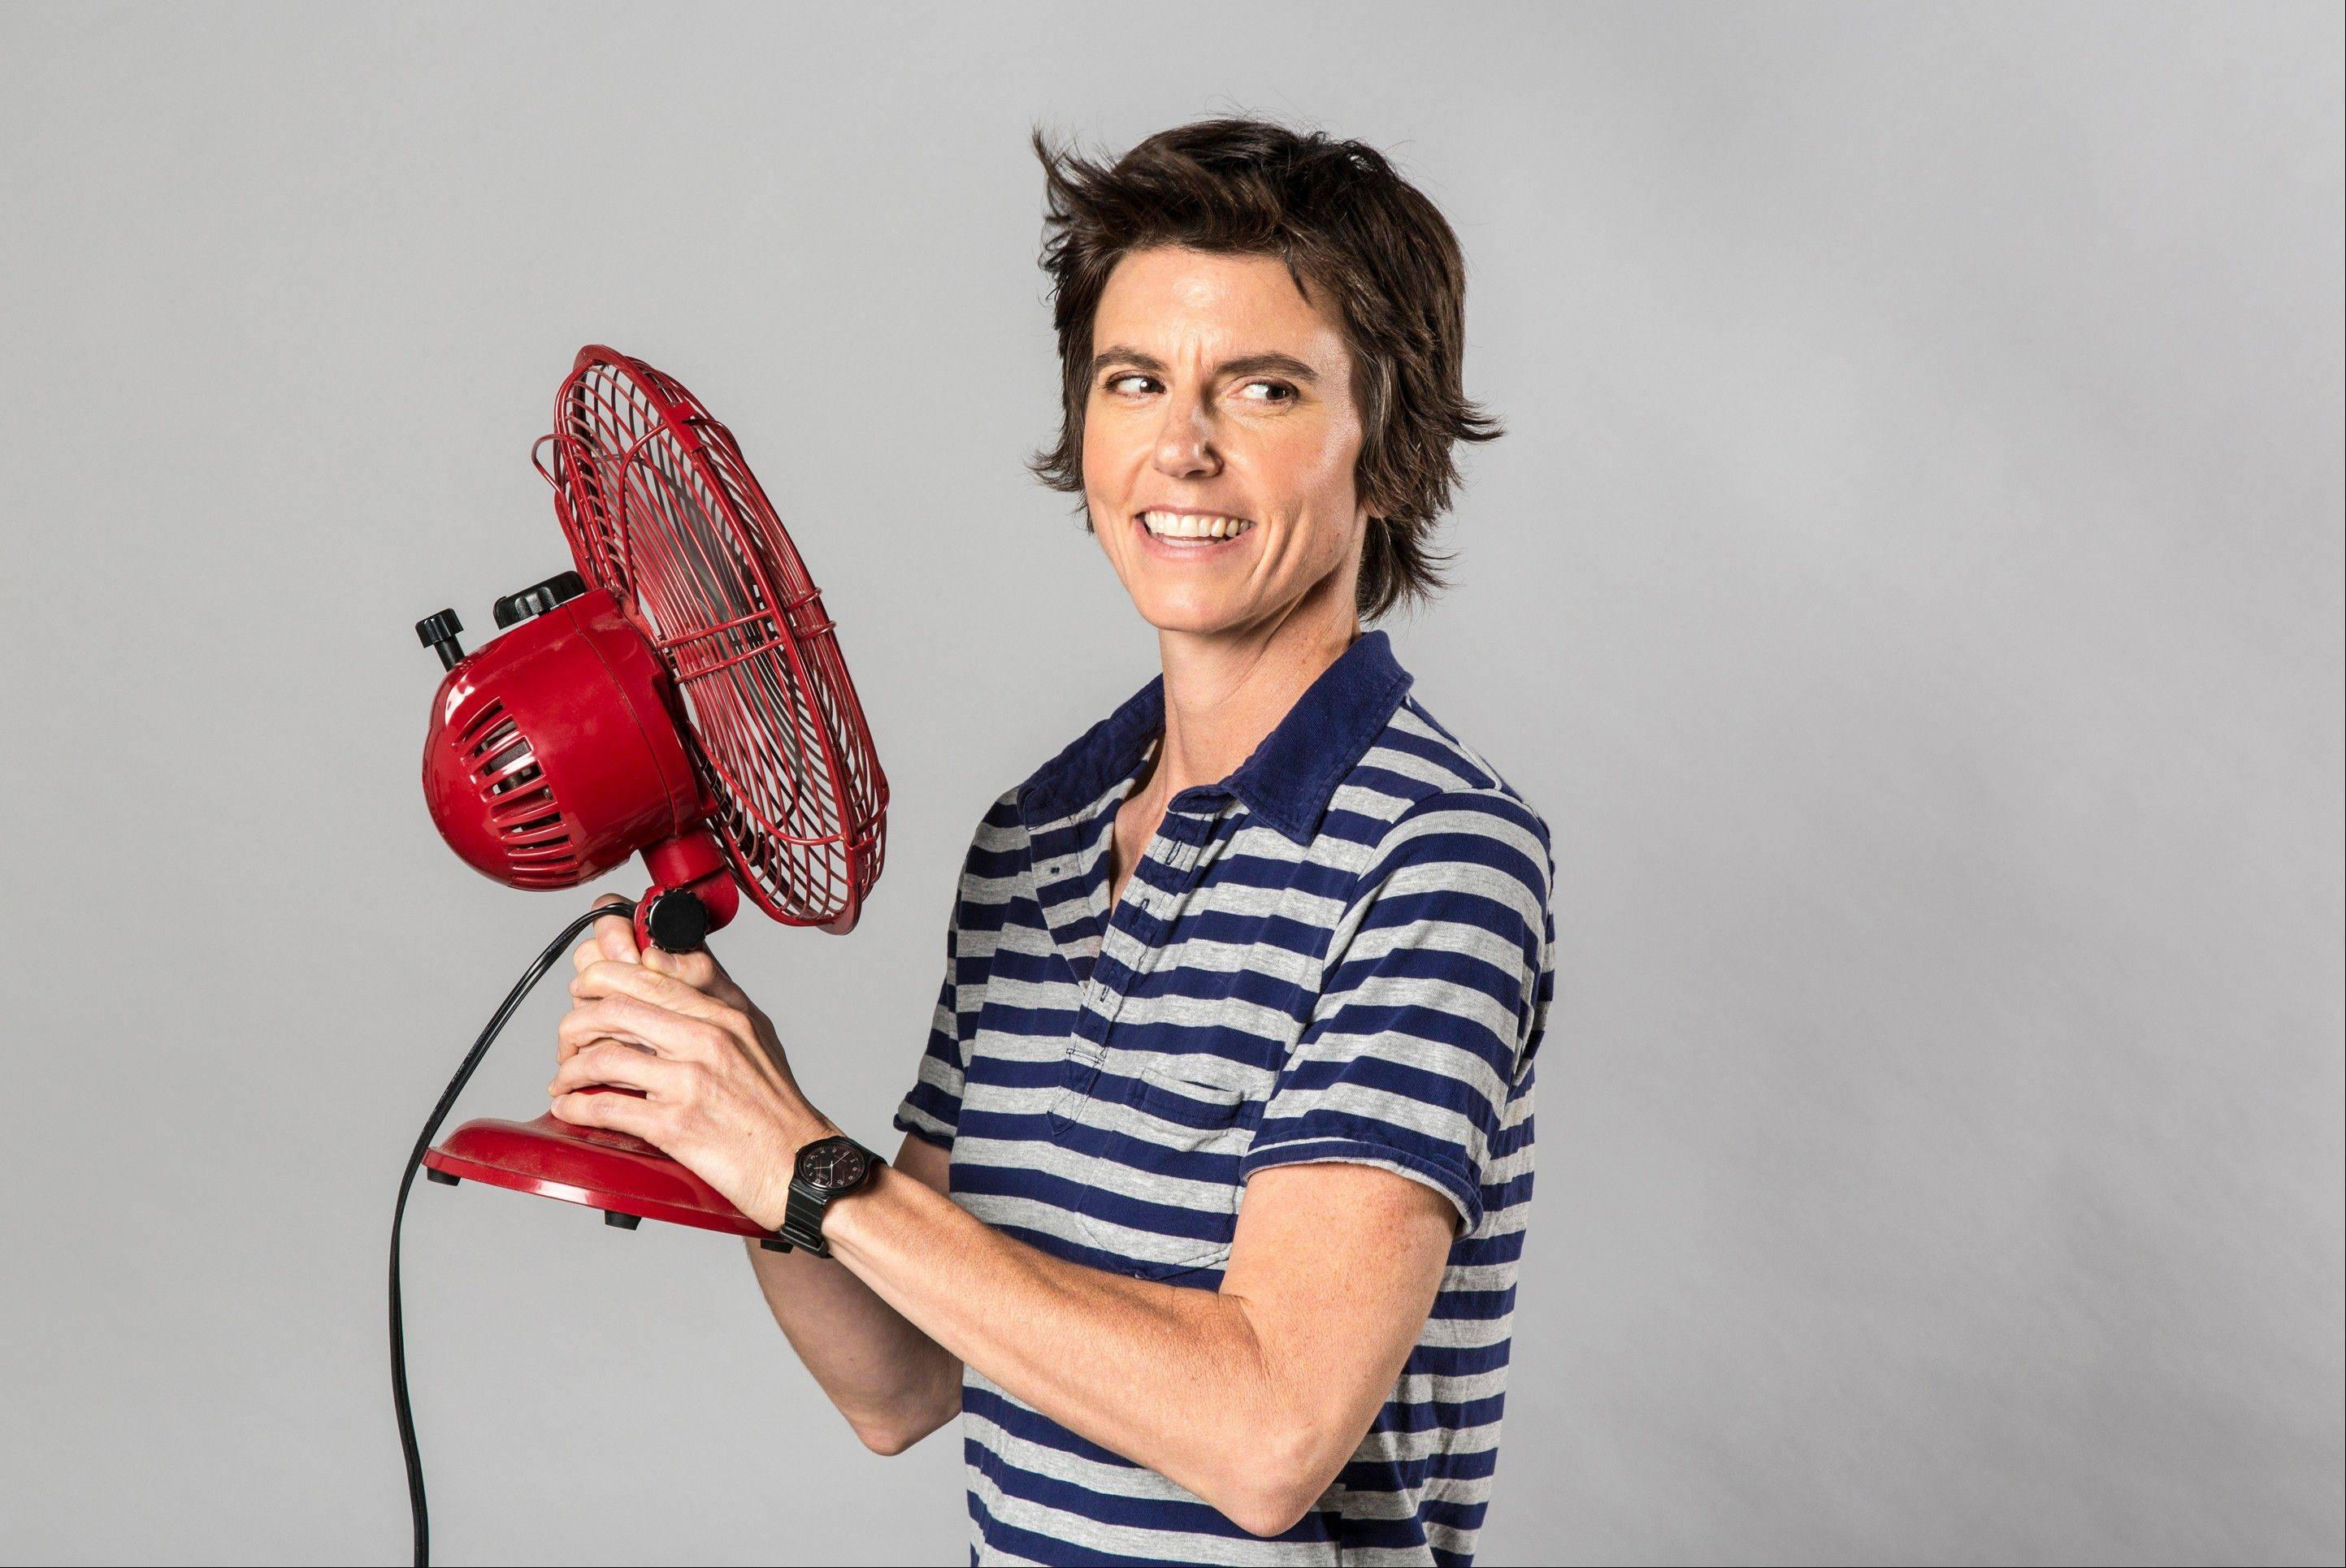 Comedian Tig Notaro launched into a 30-minute performance that immediately became legendary in comedy circles and that's now available as an unlikely live album via a $5 digital release by comedian Louis C.K. In just a week, it's sold more than 60,000 copies.